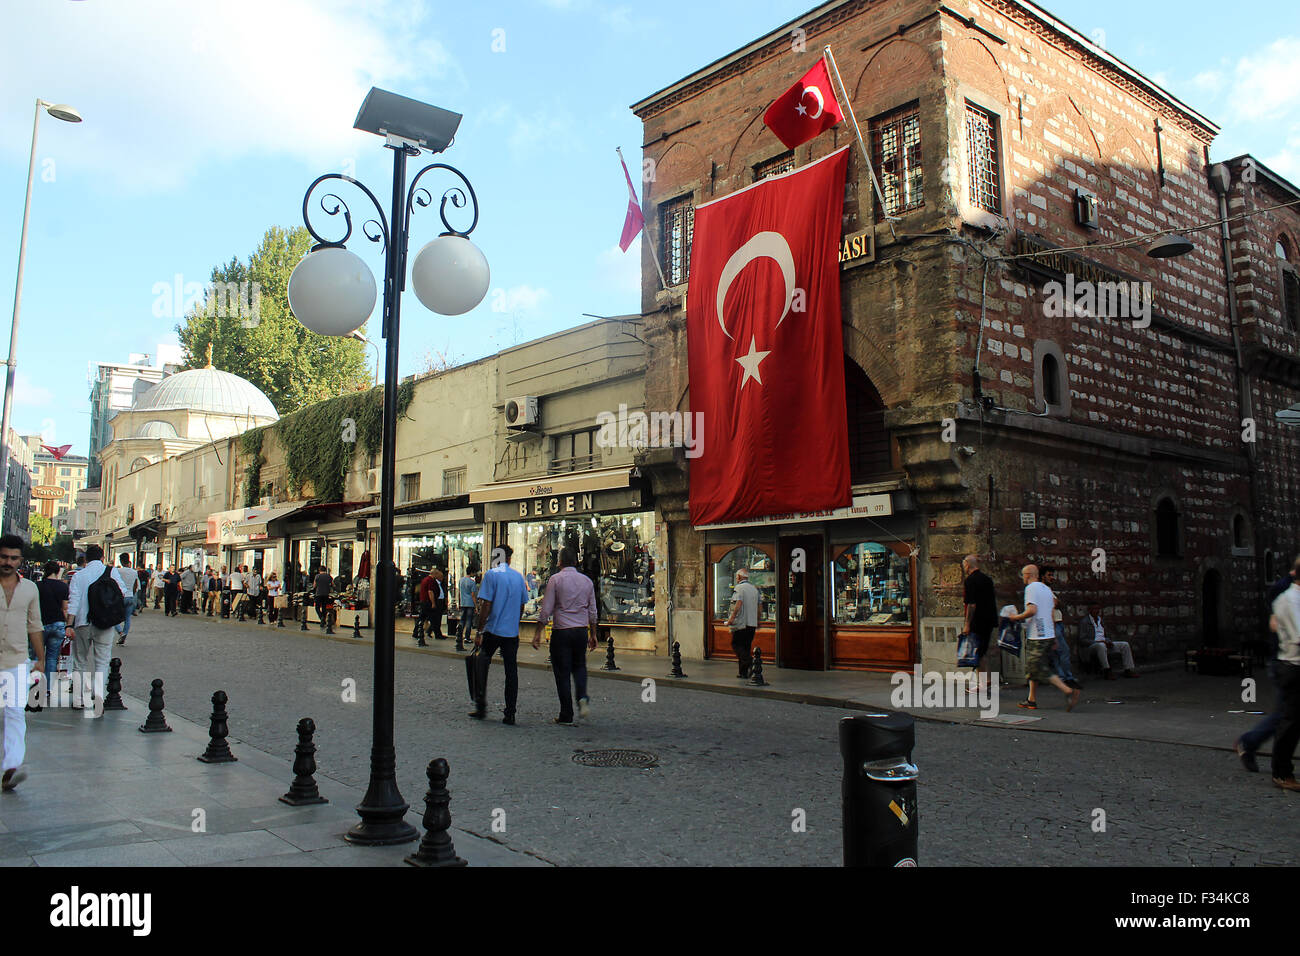 Istanbul, Turkey - September 18, 2015: The Turkish flag outside in the street Stock Photo